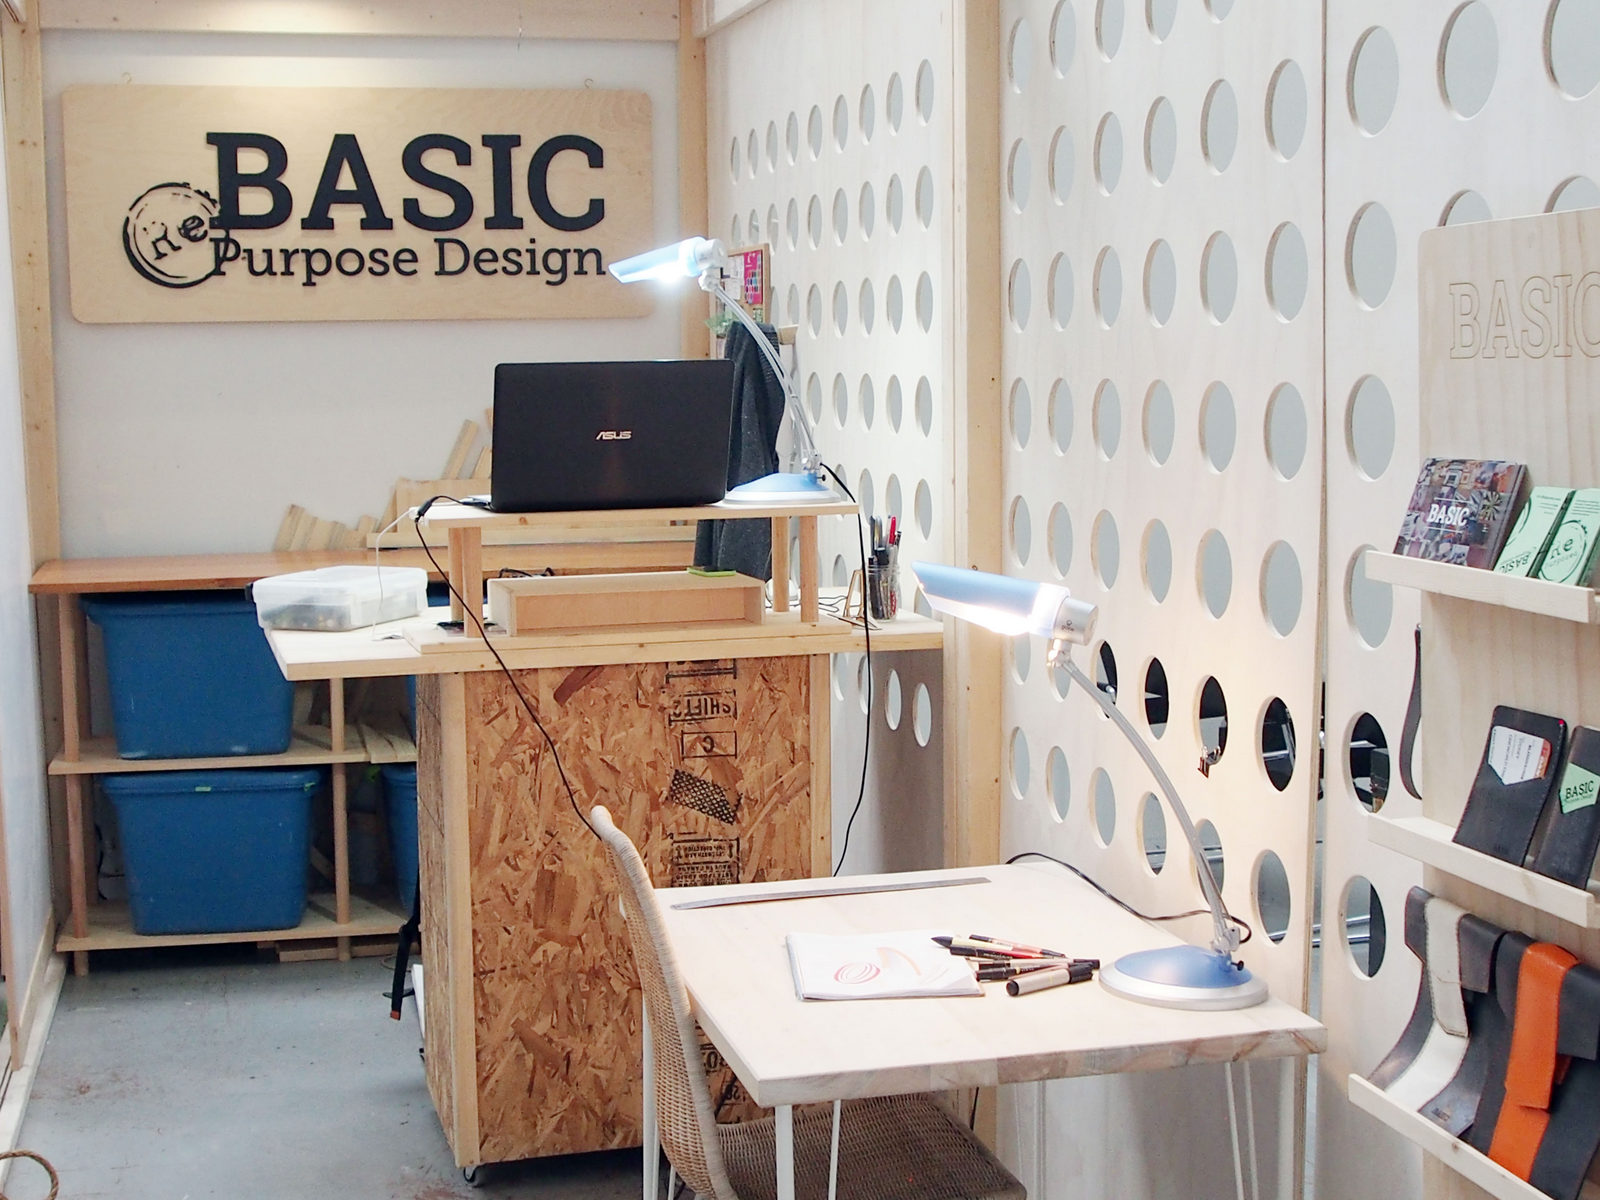 Konisa Studio - Space collaboration project with BASIC Design